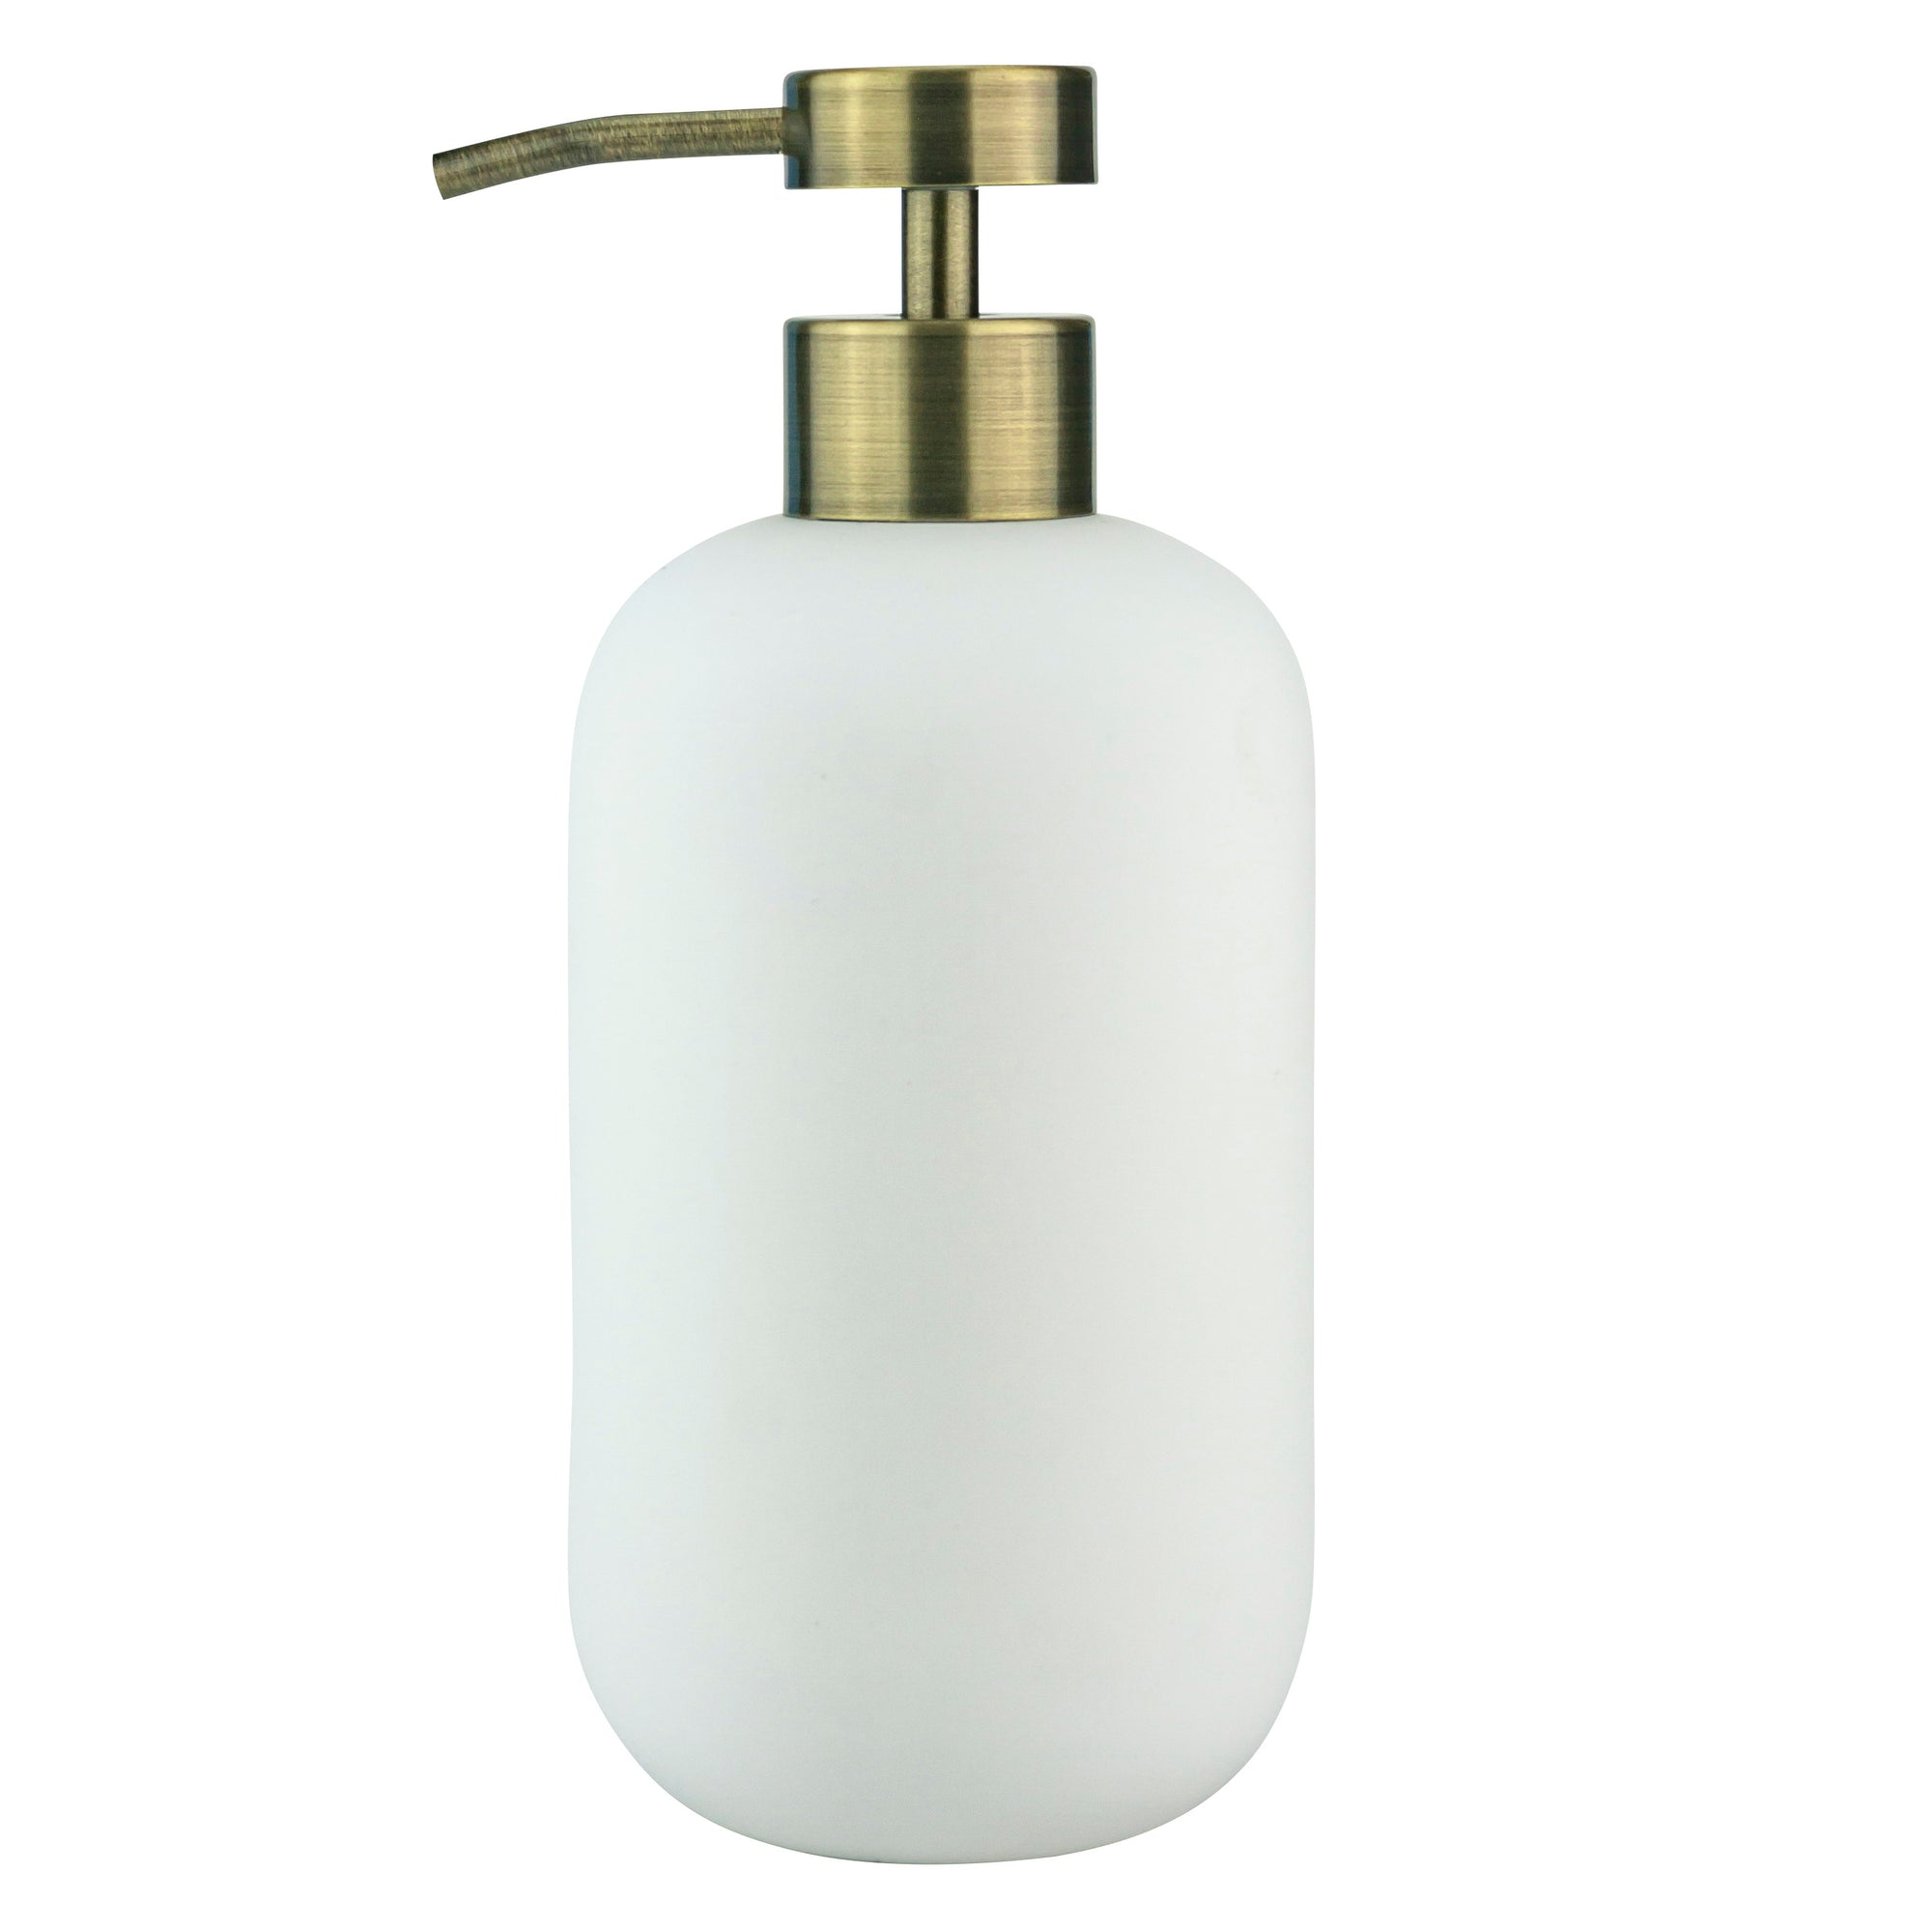 LOTUS Soap Dispenser- White